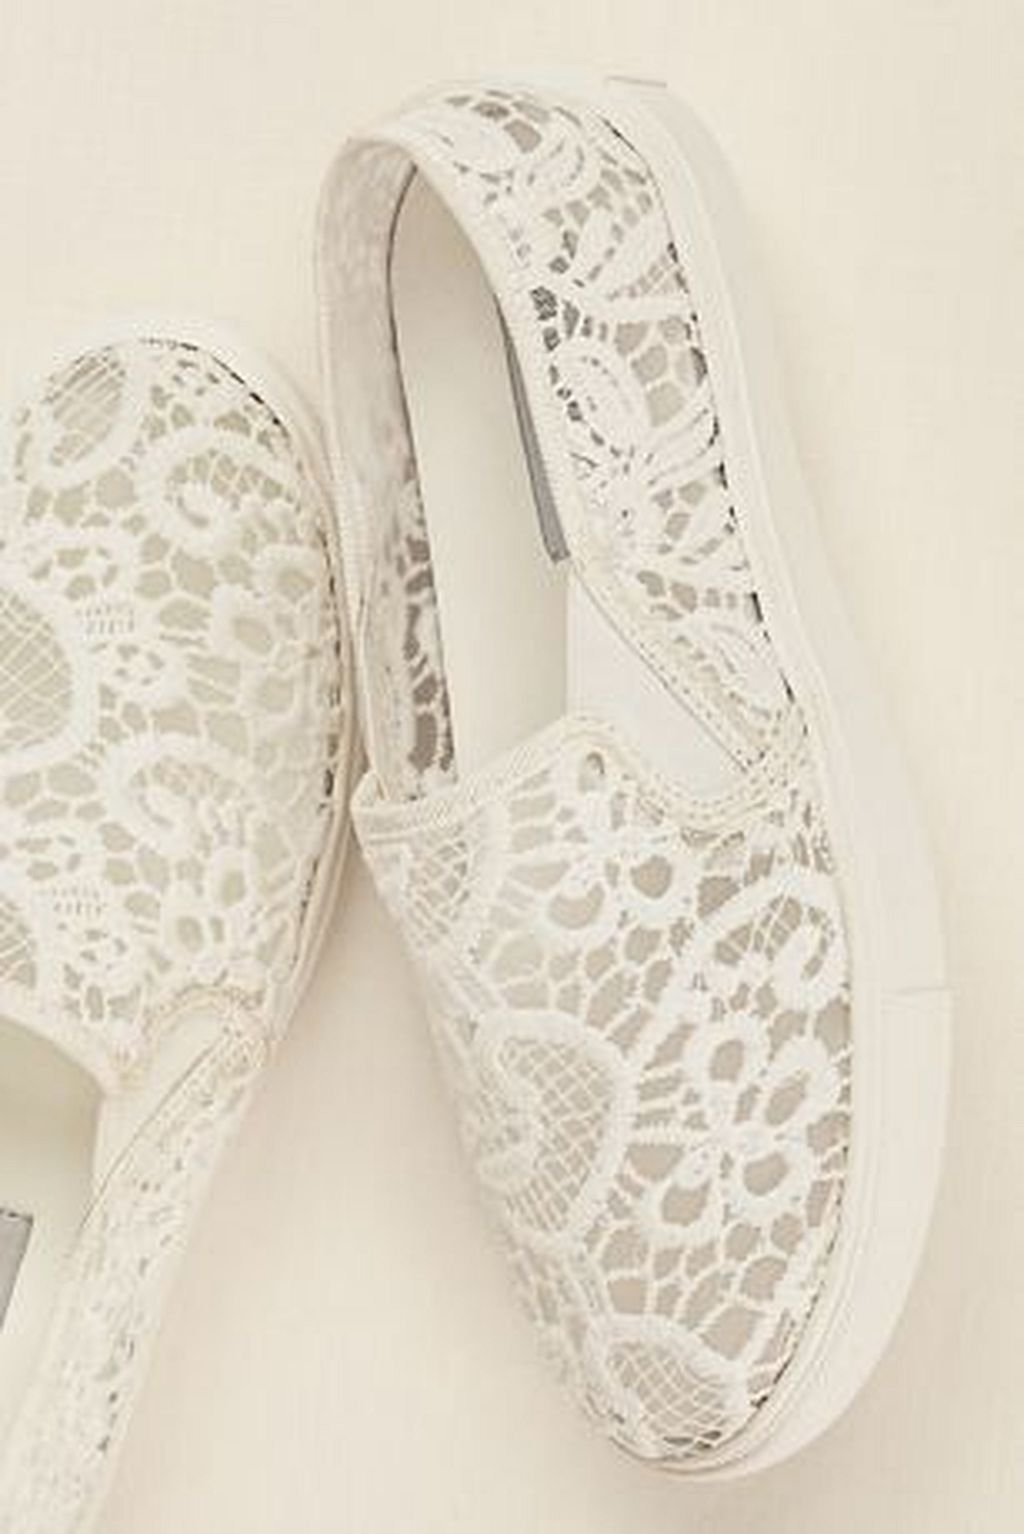 80+ The Most Comfortable Wedding Shoes Ideas | Pinterest ...